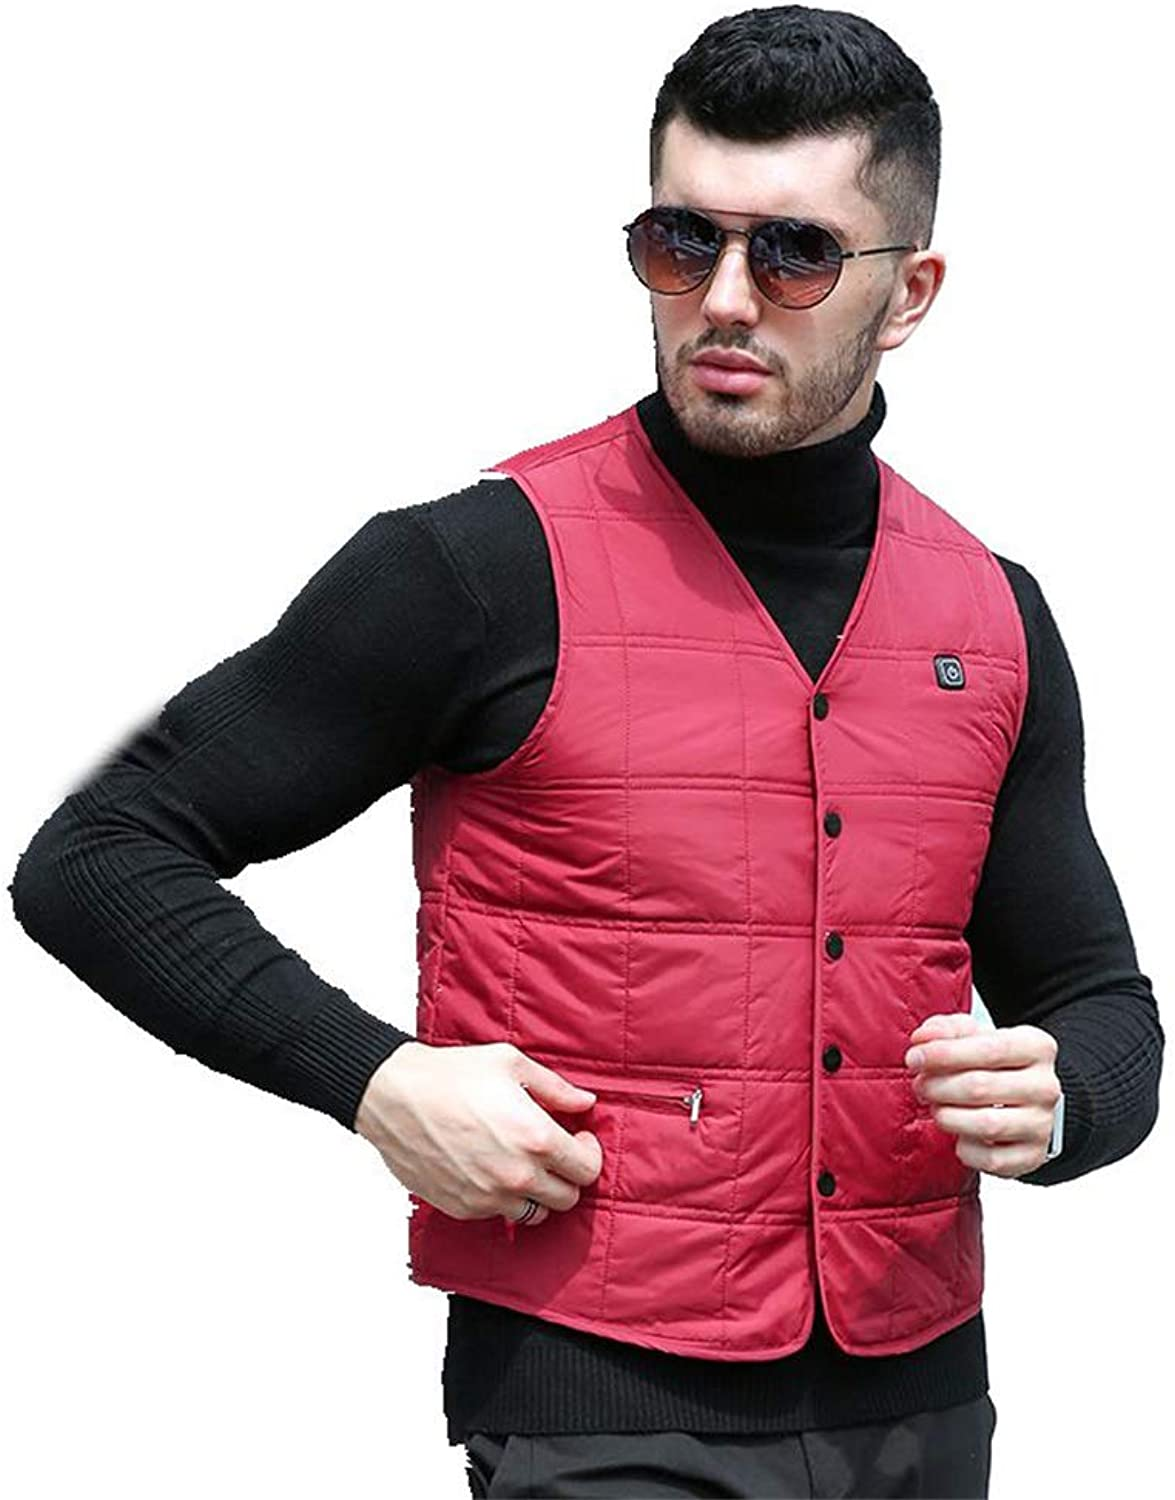 LiangG Heated Vest, USB Electric Heated Adjustable Temperature for Use Men Women